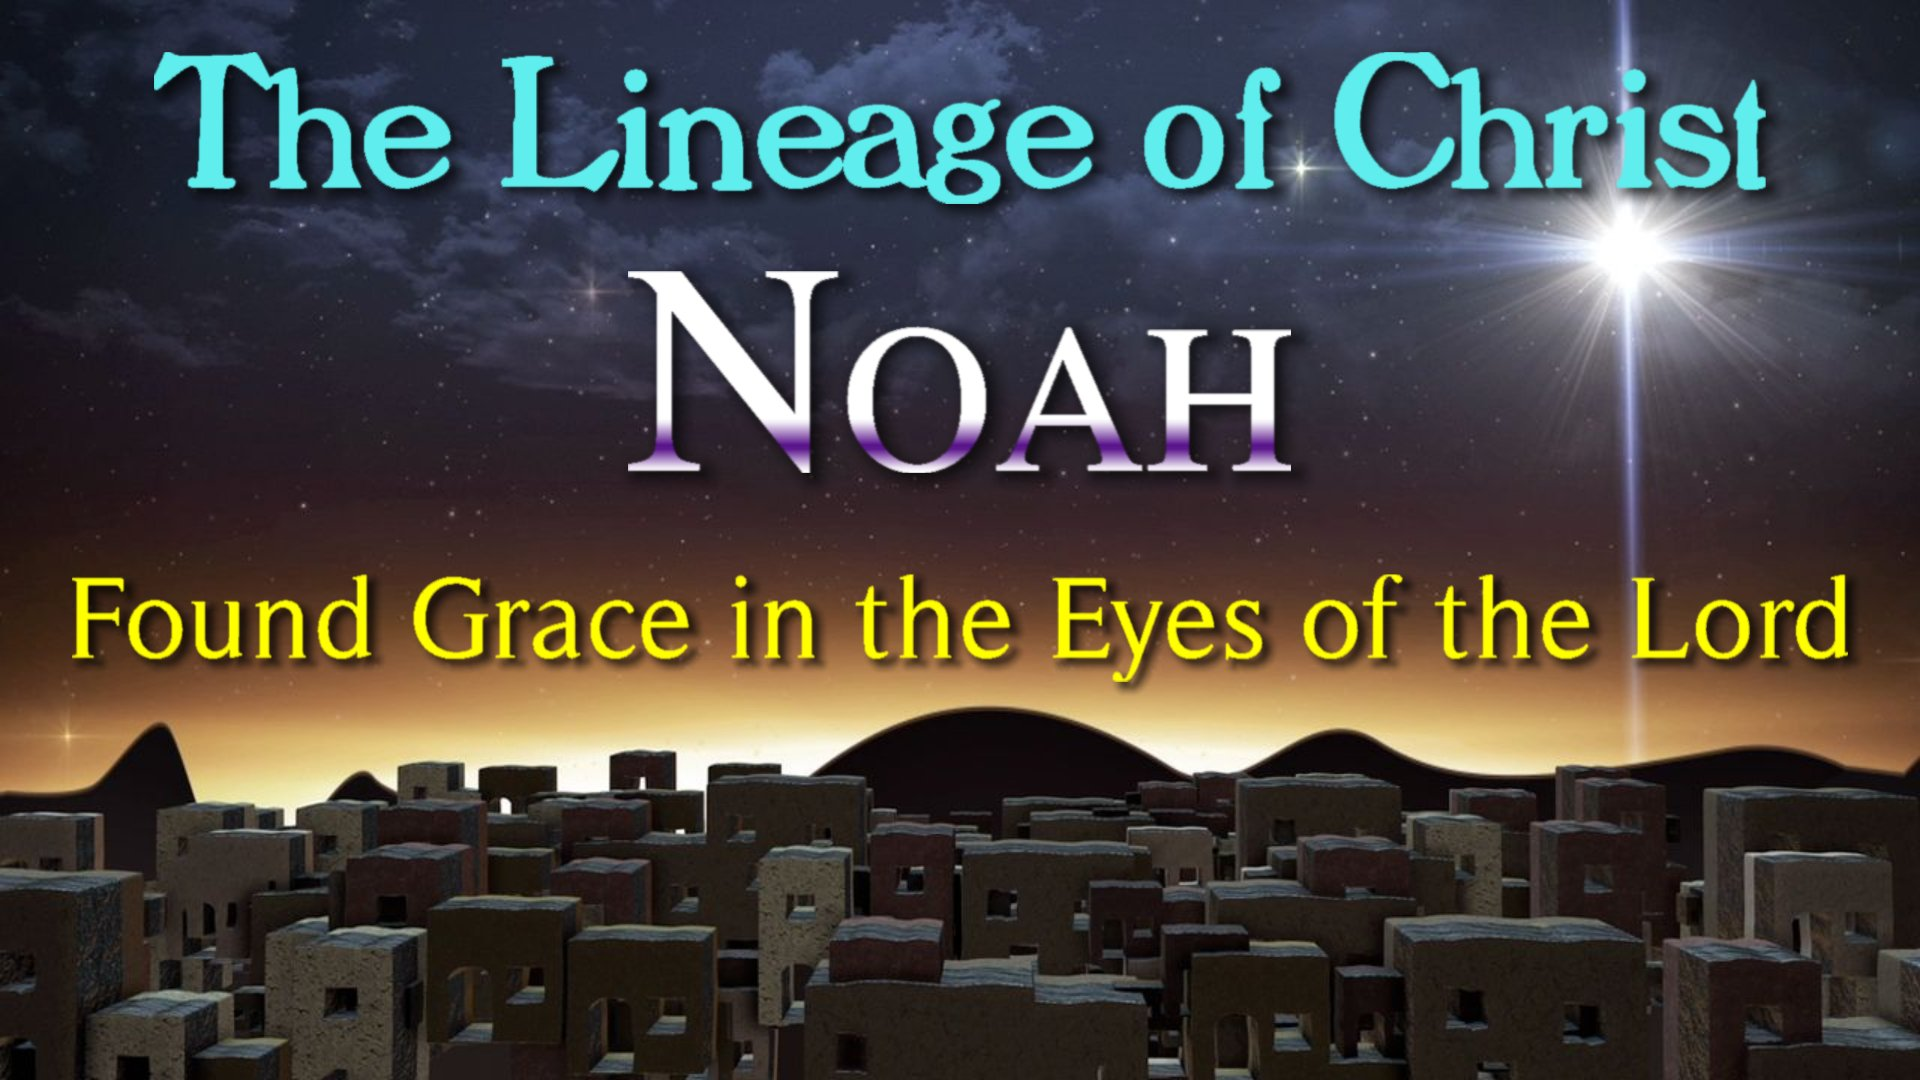 05 Noah Found Grace in the Eyes of the Lord